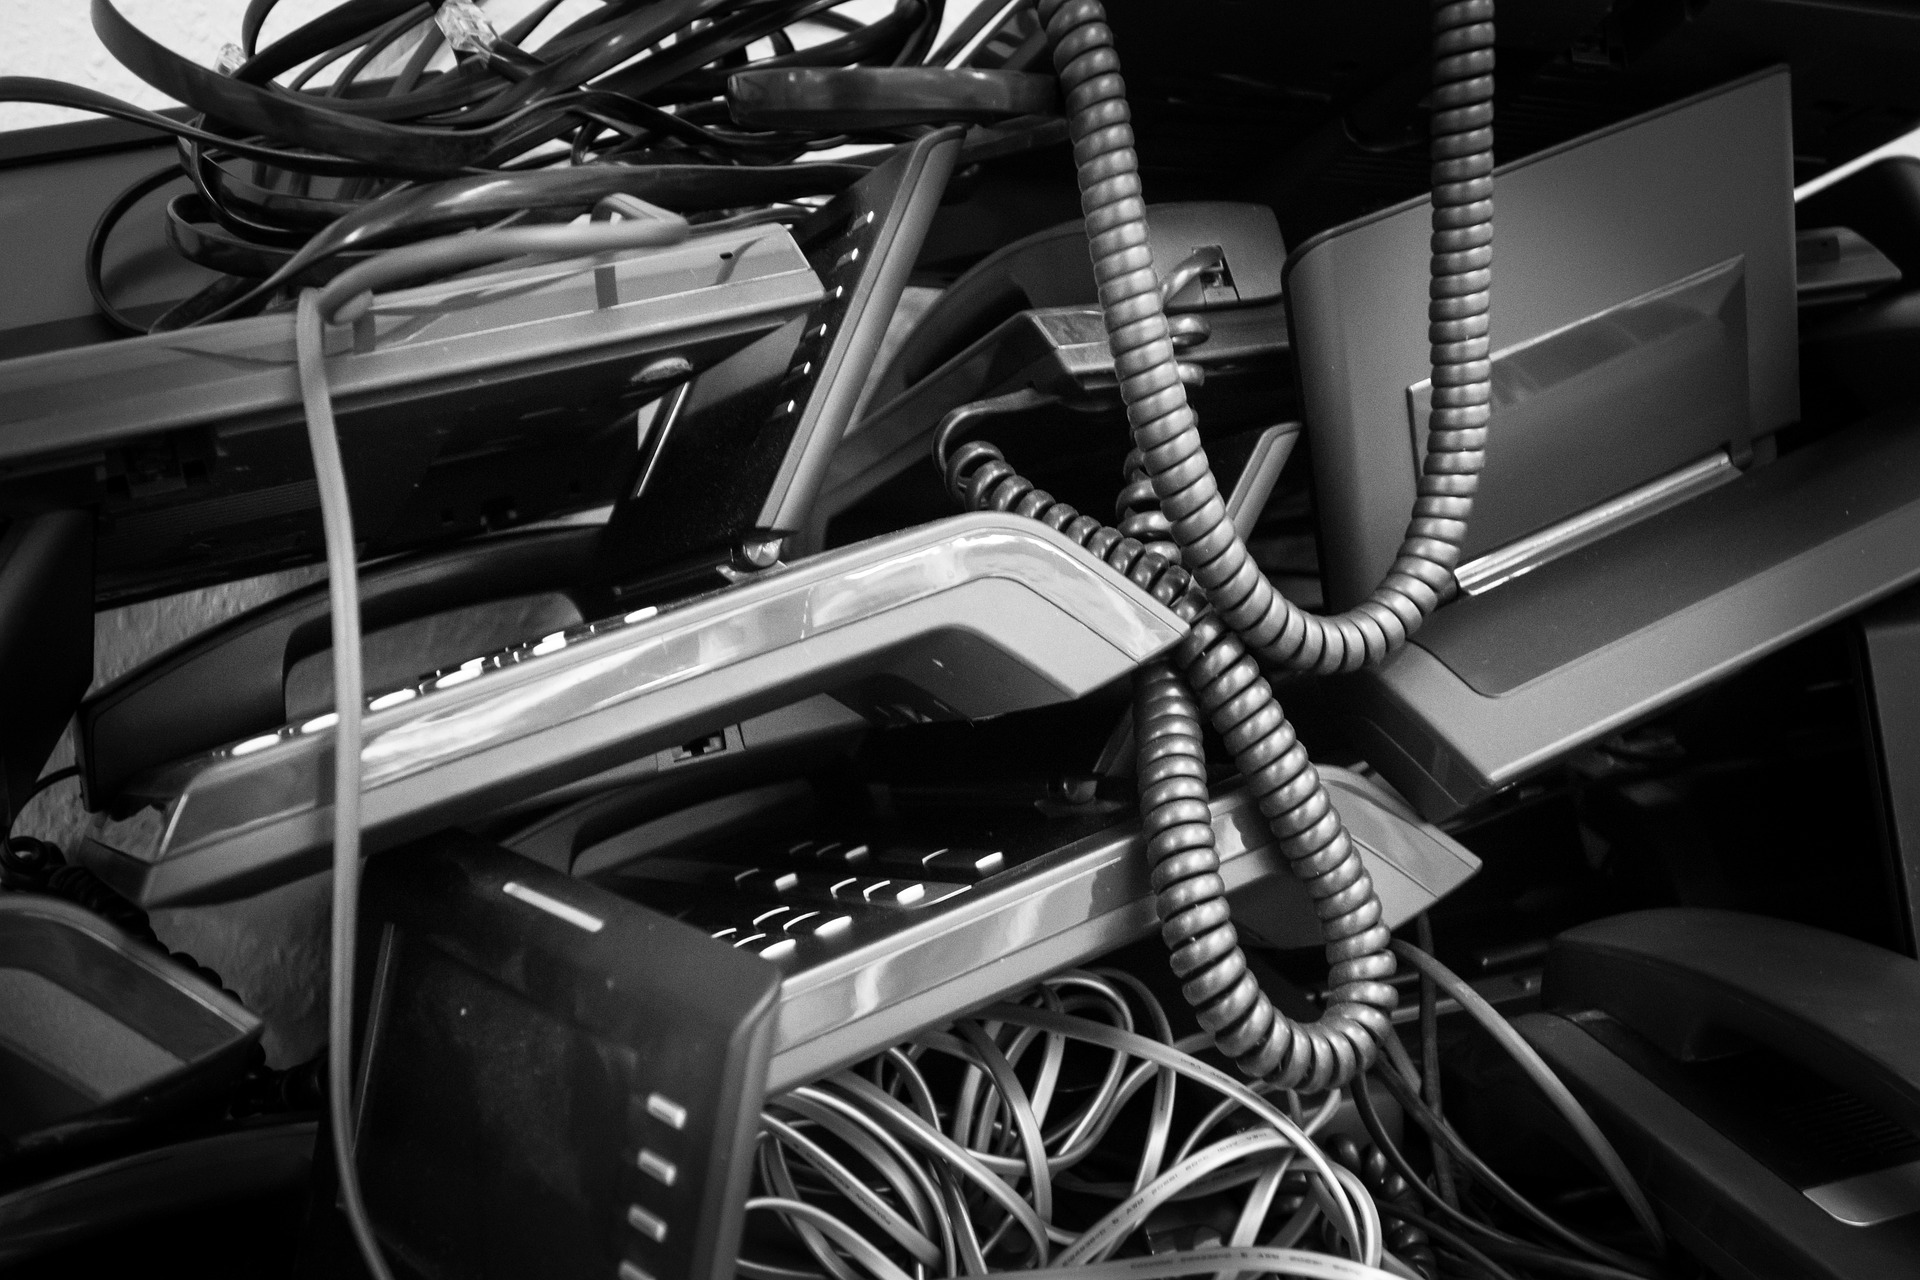 E-Waste Management - Safely and securely disposing of electronic waste